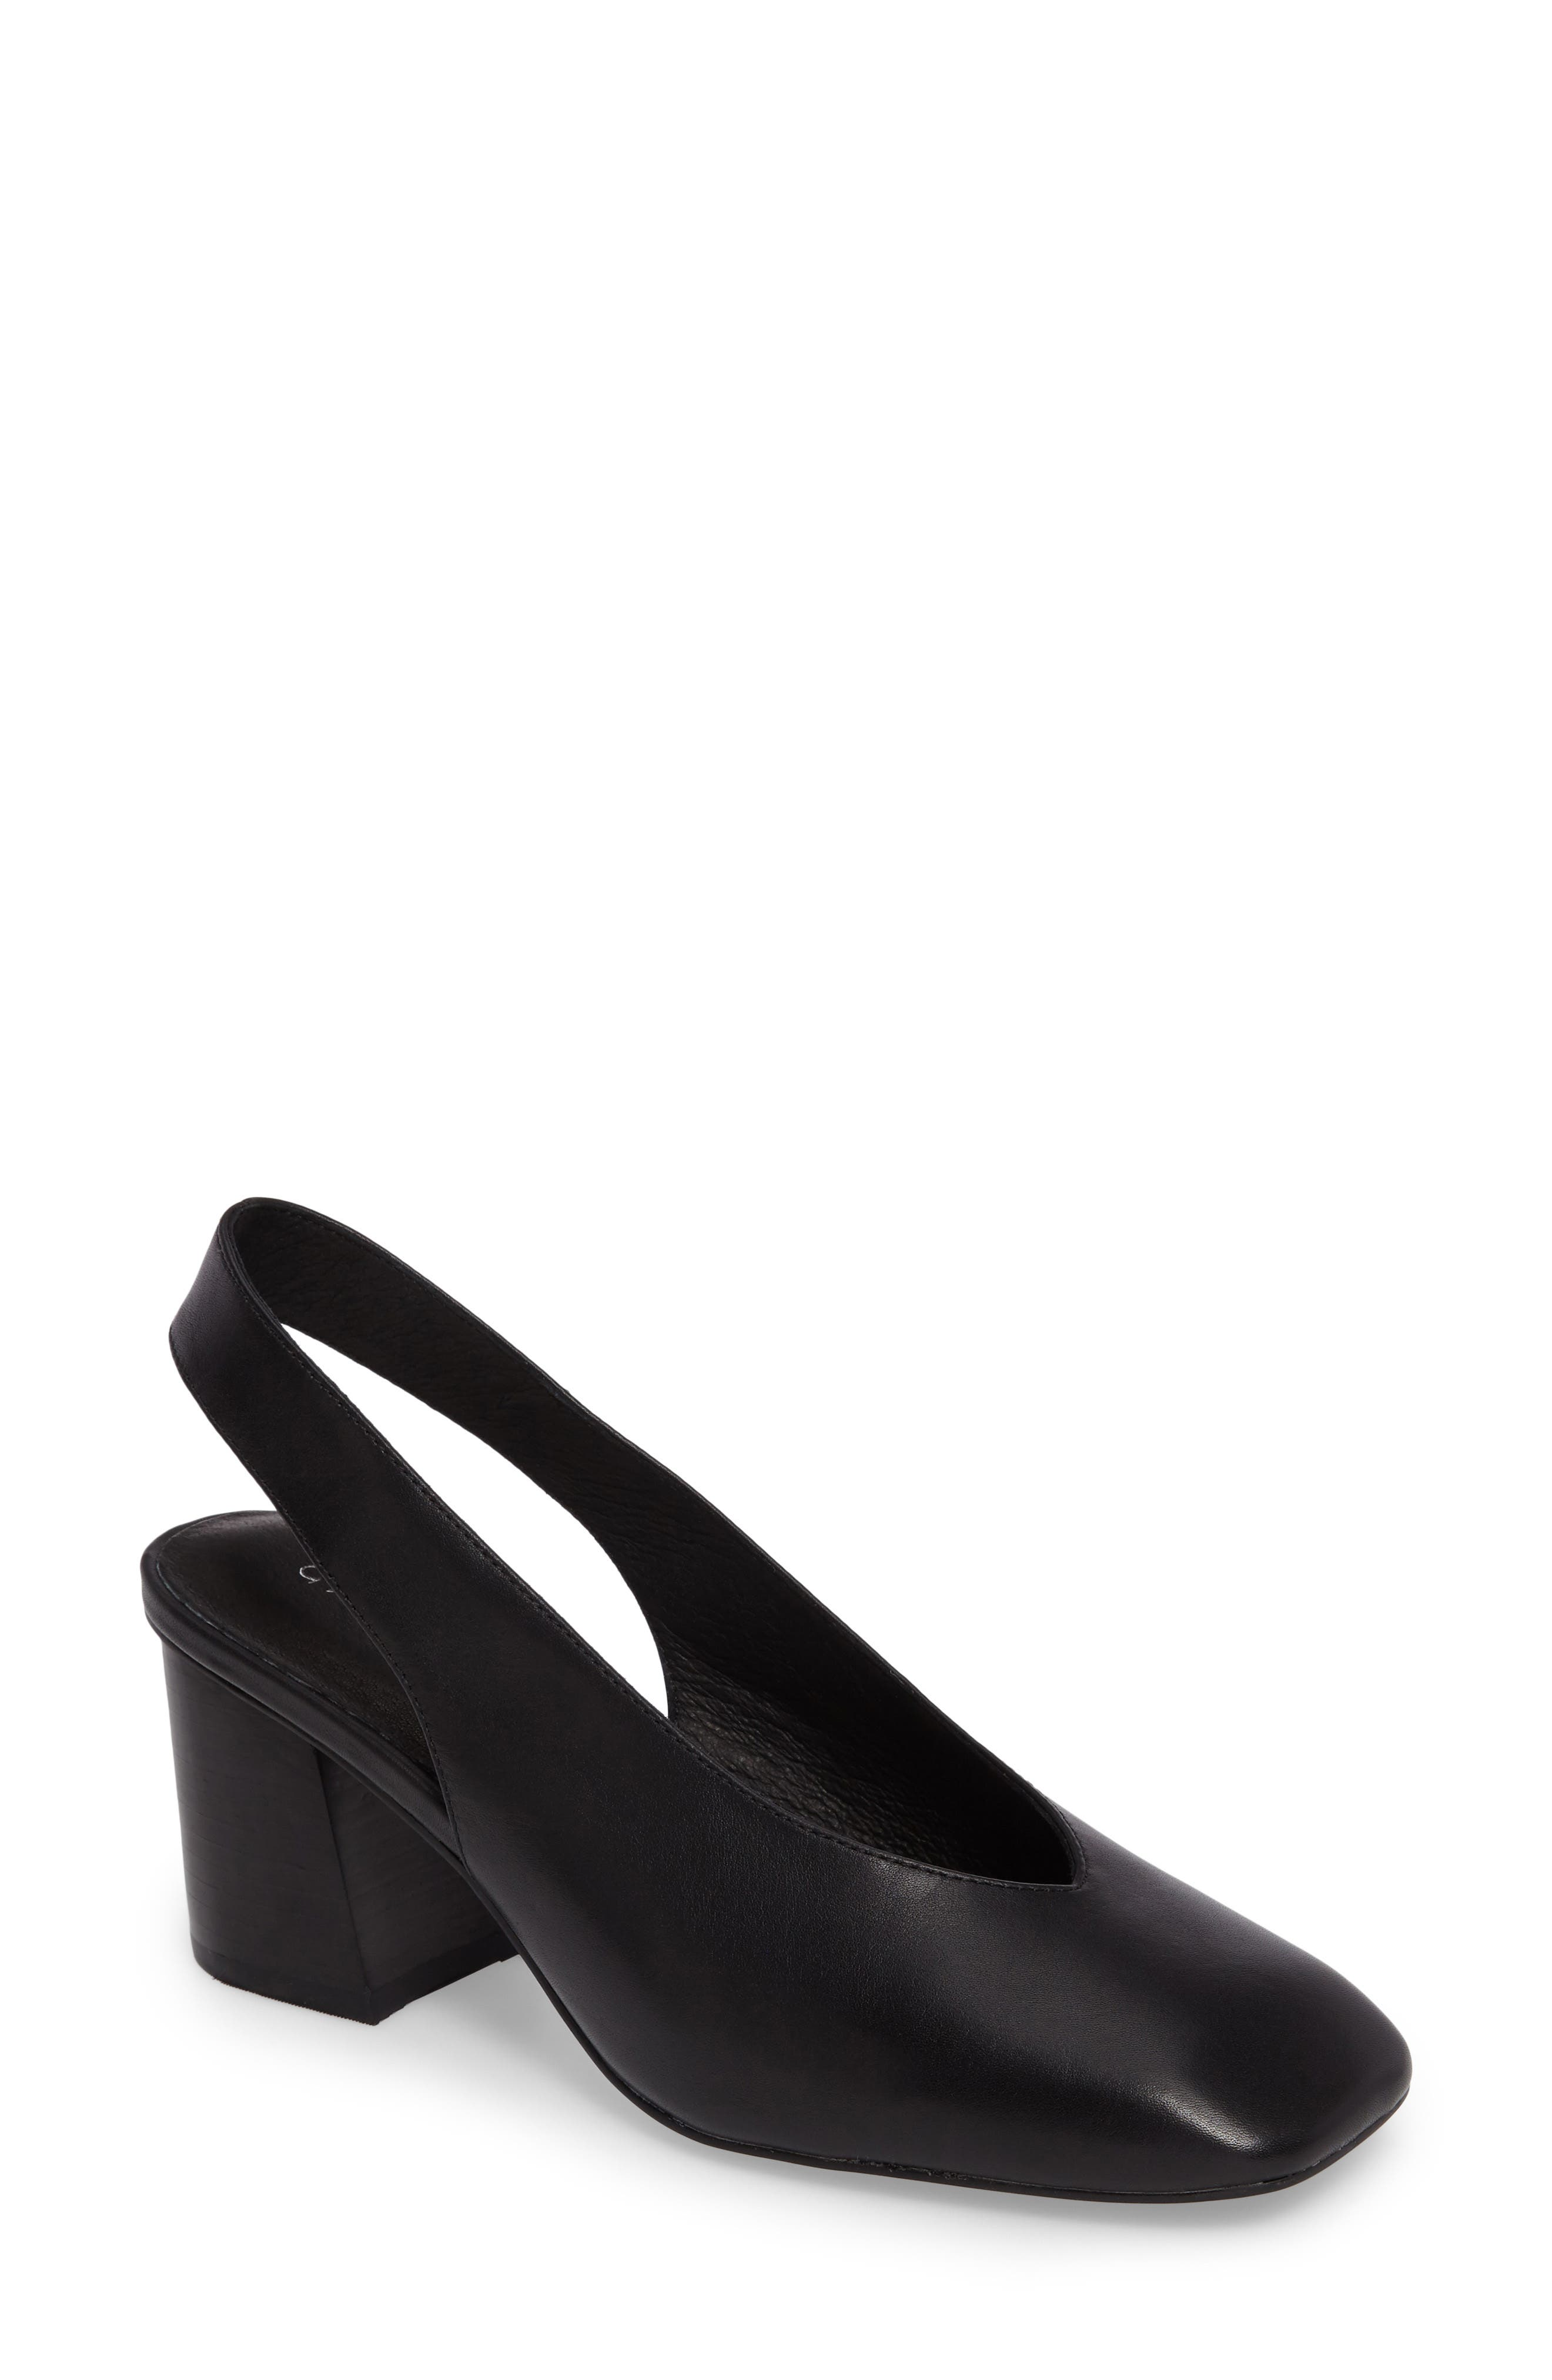 Alternate Image 1 Selected - Grey City Sydney Square-Toe Slingback Pump (Women)